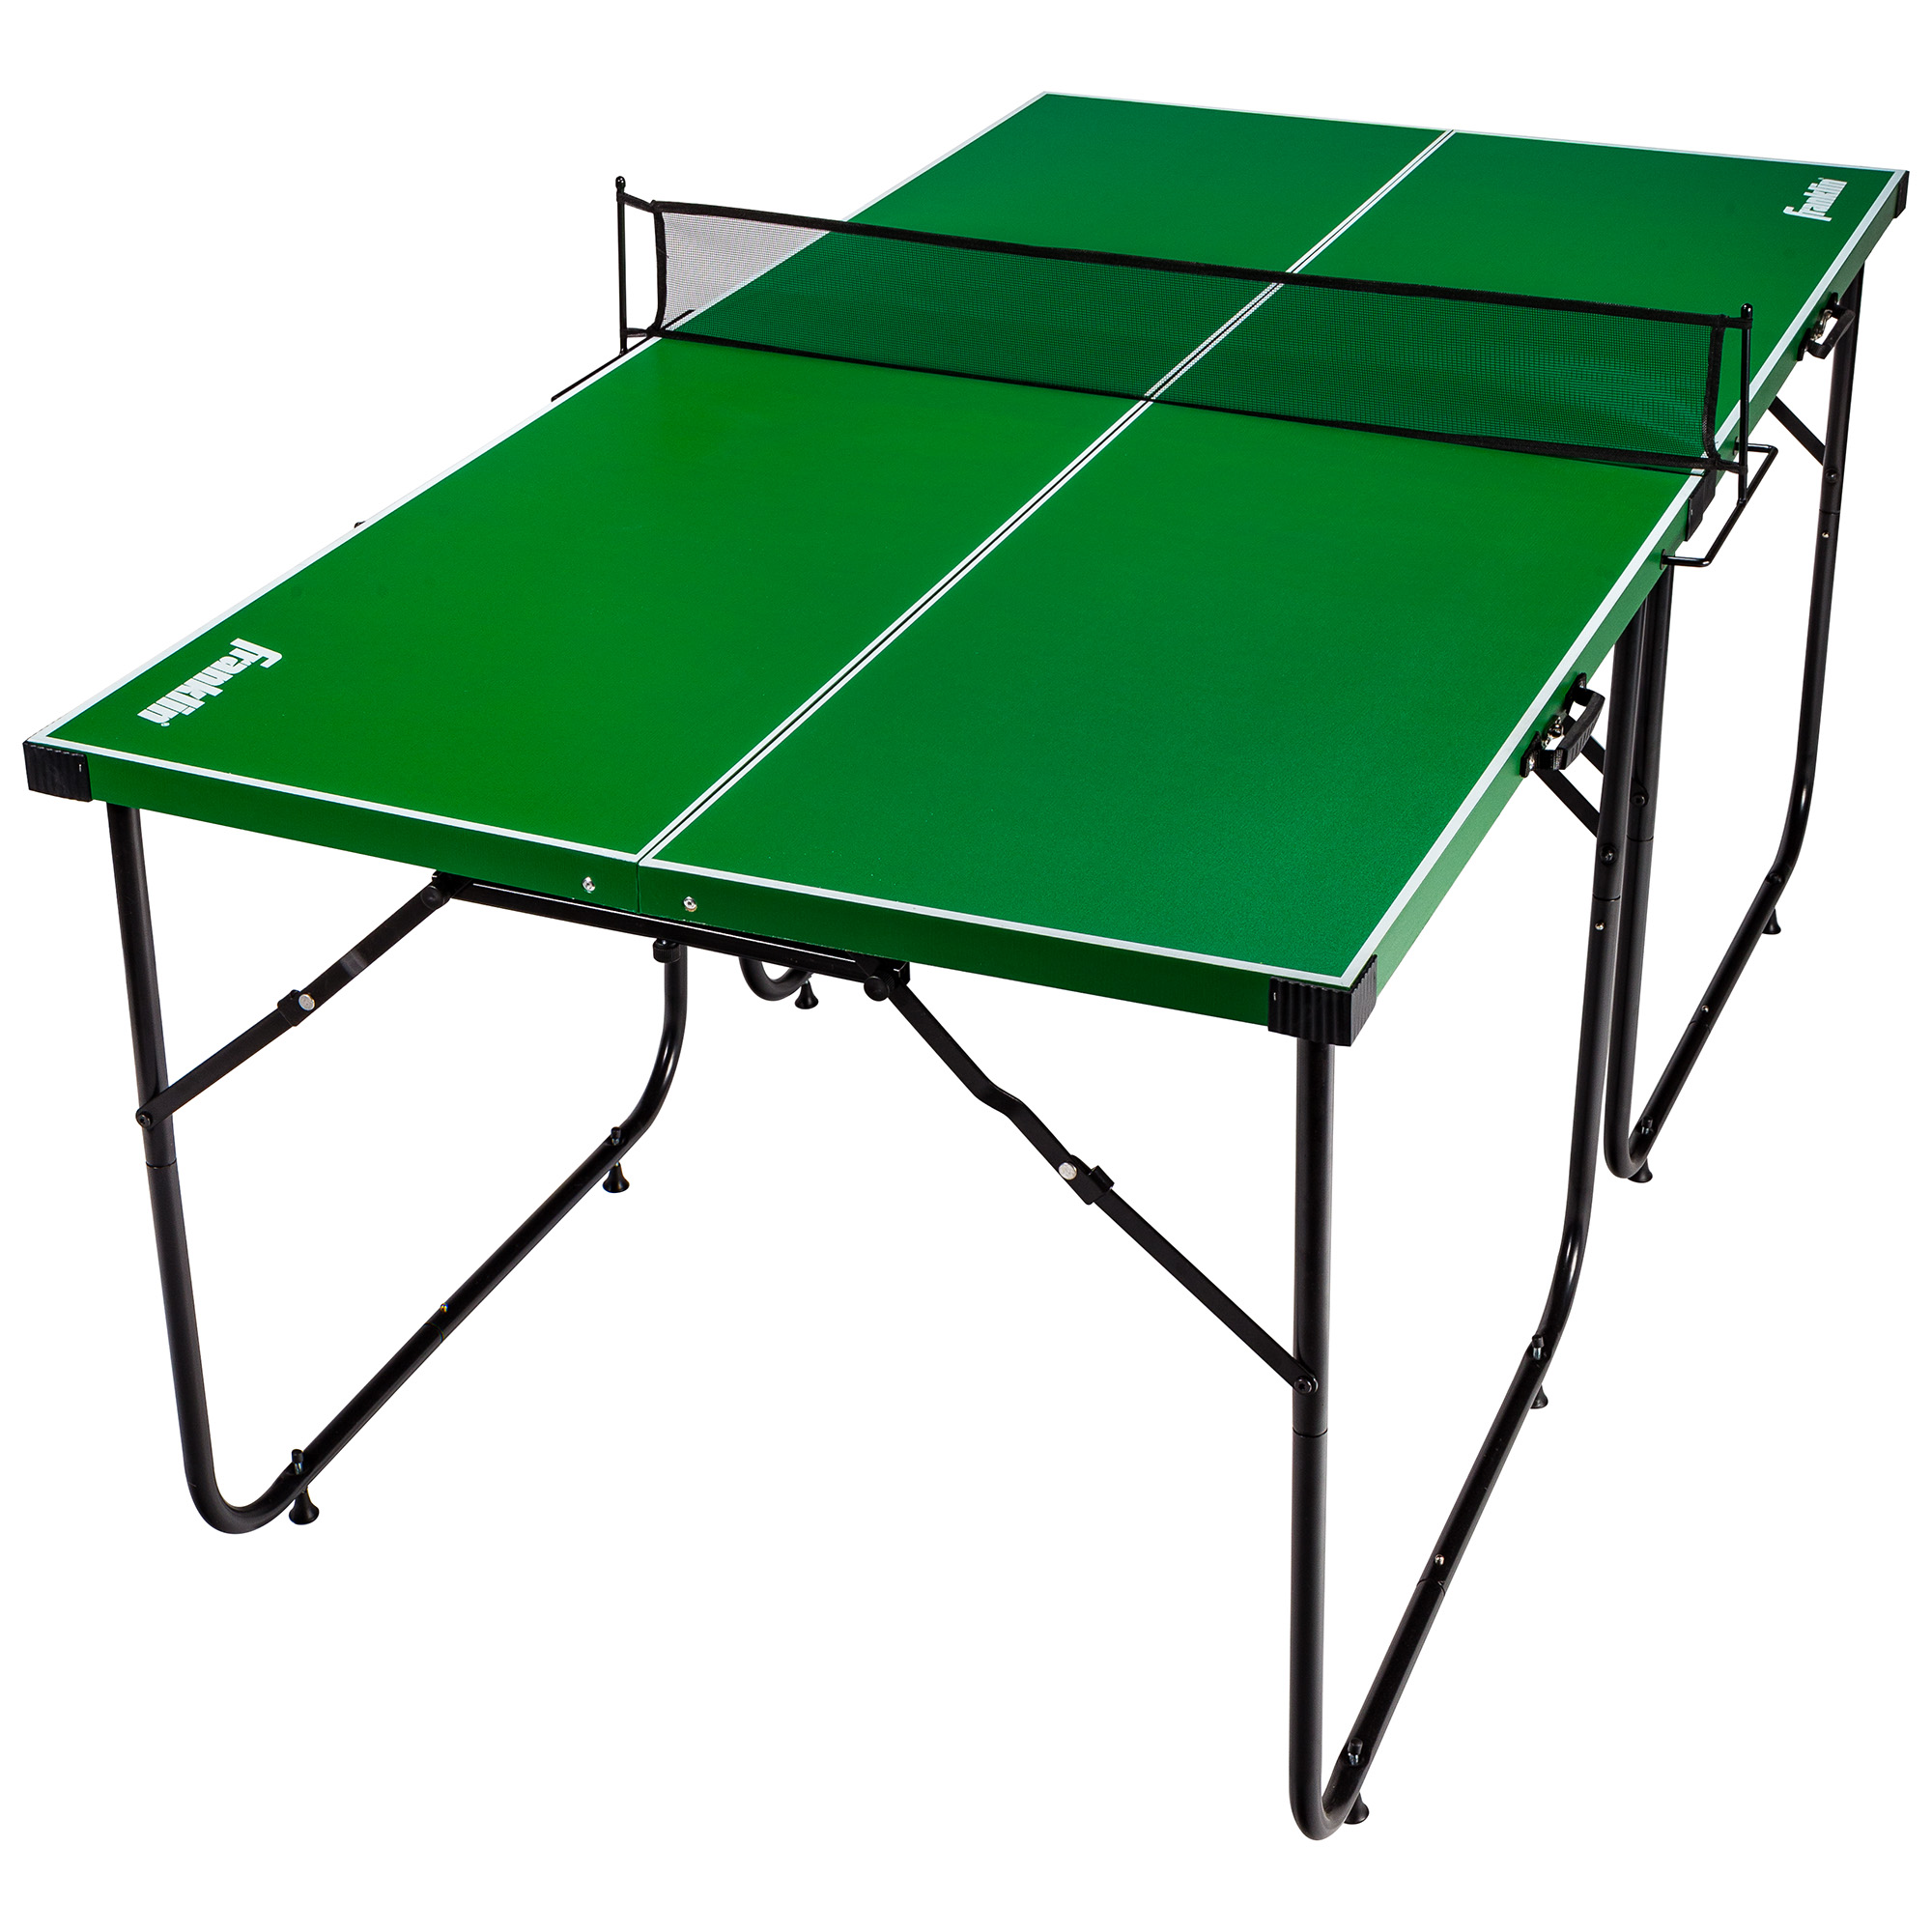 Franklin Sports Official Height Mid-Size Foldable Table Tennis Table, 6' x 3', Green